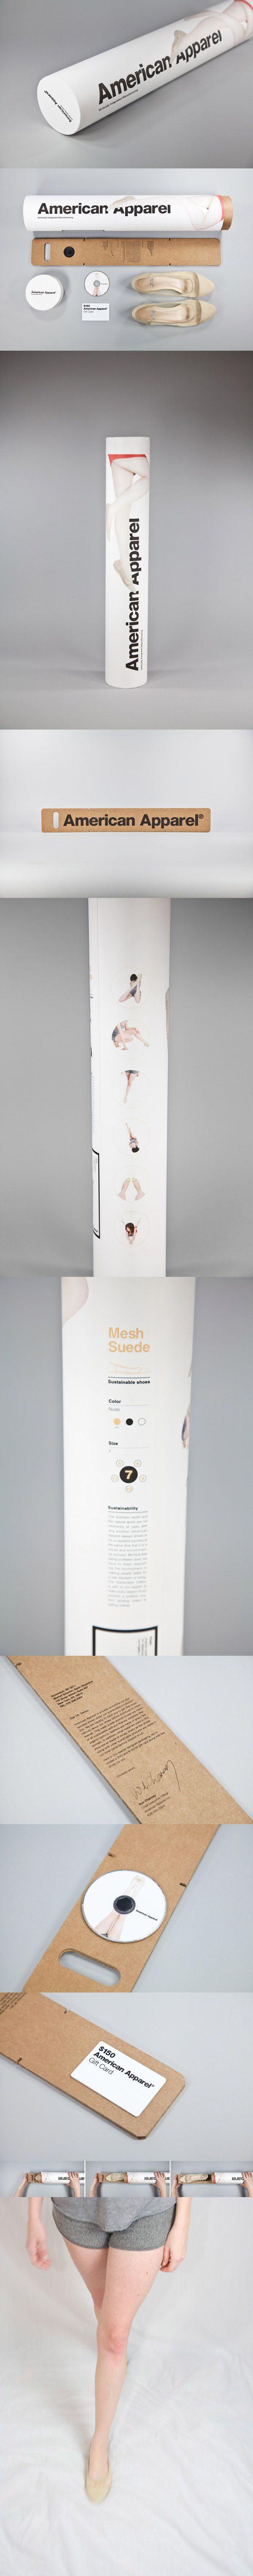 American Apparel Sustainable Shoe #packaging PD